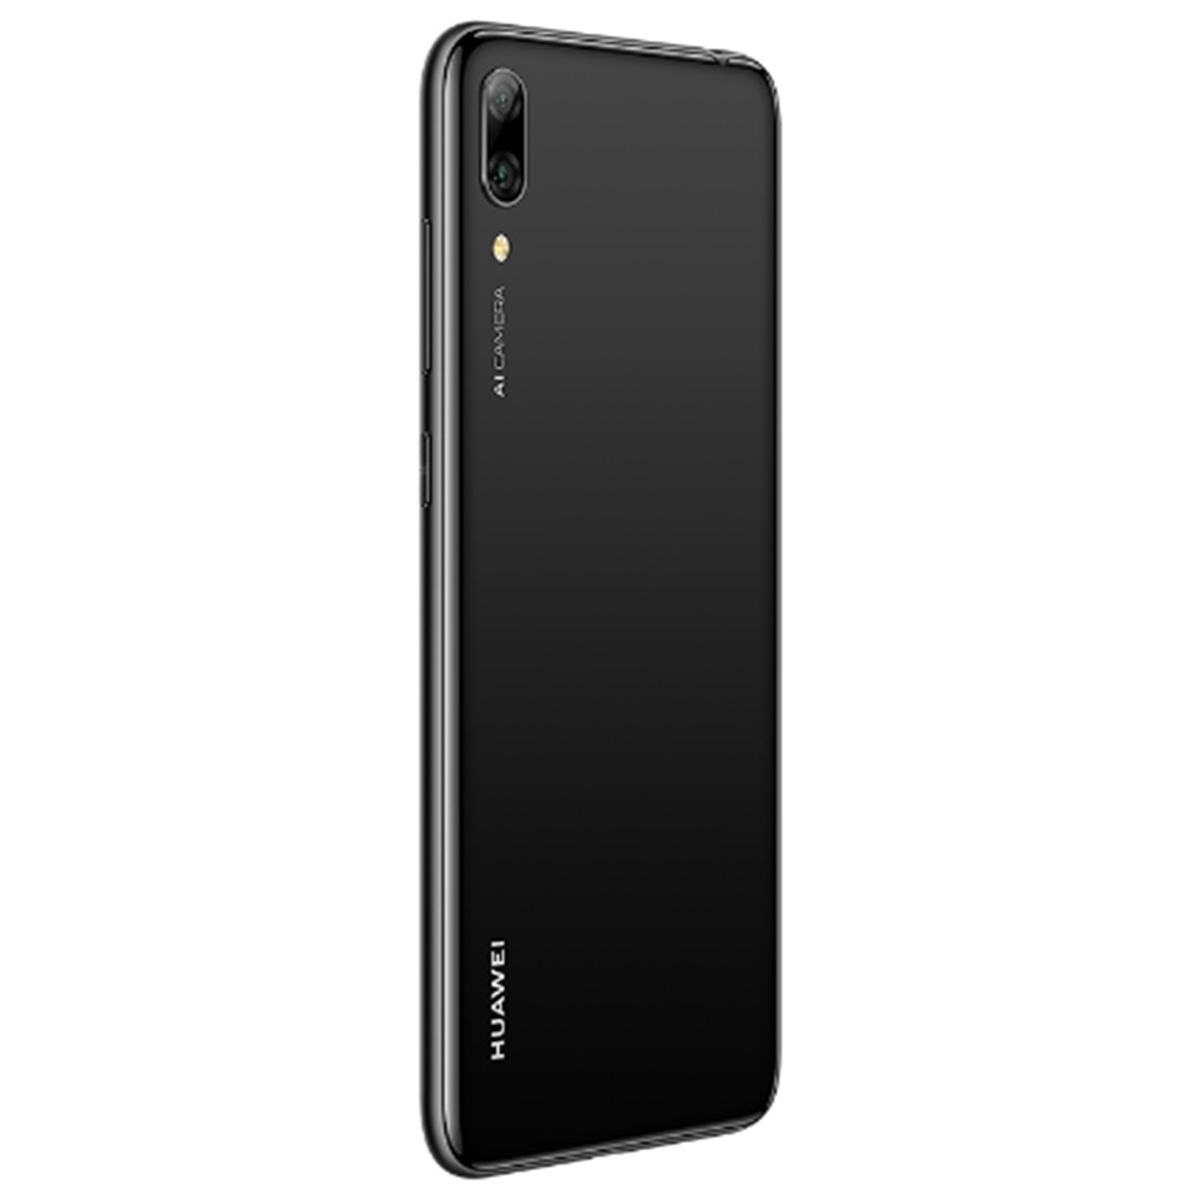 "HTB1nP8Gek5E3KVjSZFCq6zuzXXat Huawei Enjoy 9 Smart Phone 3+32G 6.26"" Android 8.1 Octa Core Huawei Y7 Pro Mobile Phone 4000mAh Dual Card Dual Stand 4000mAh"